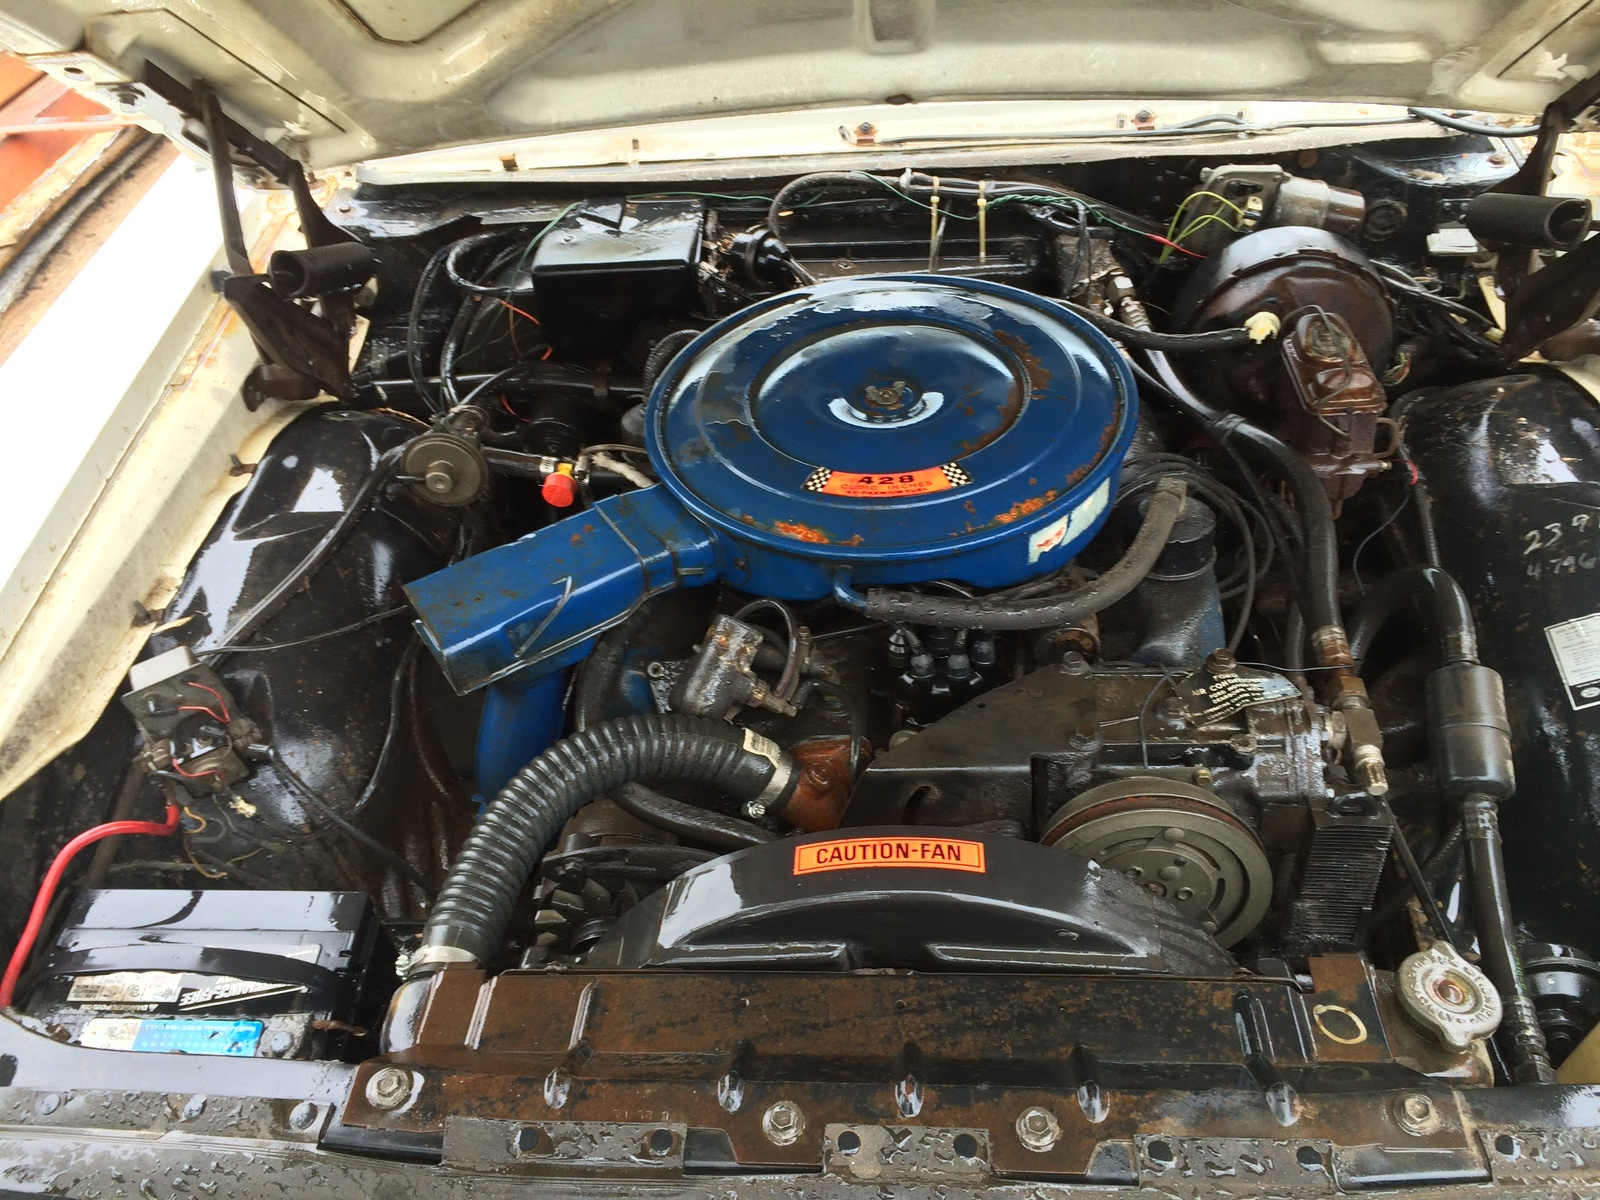 1968 Ford Country Squire picture, engine